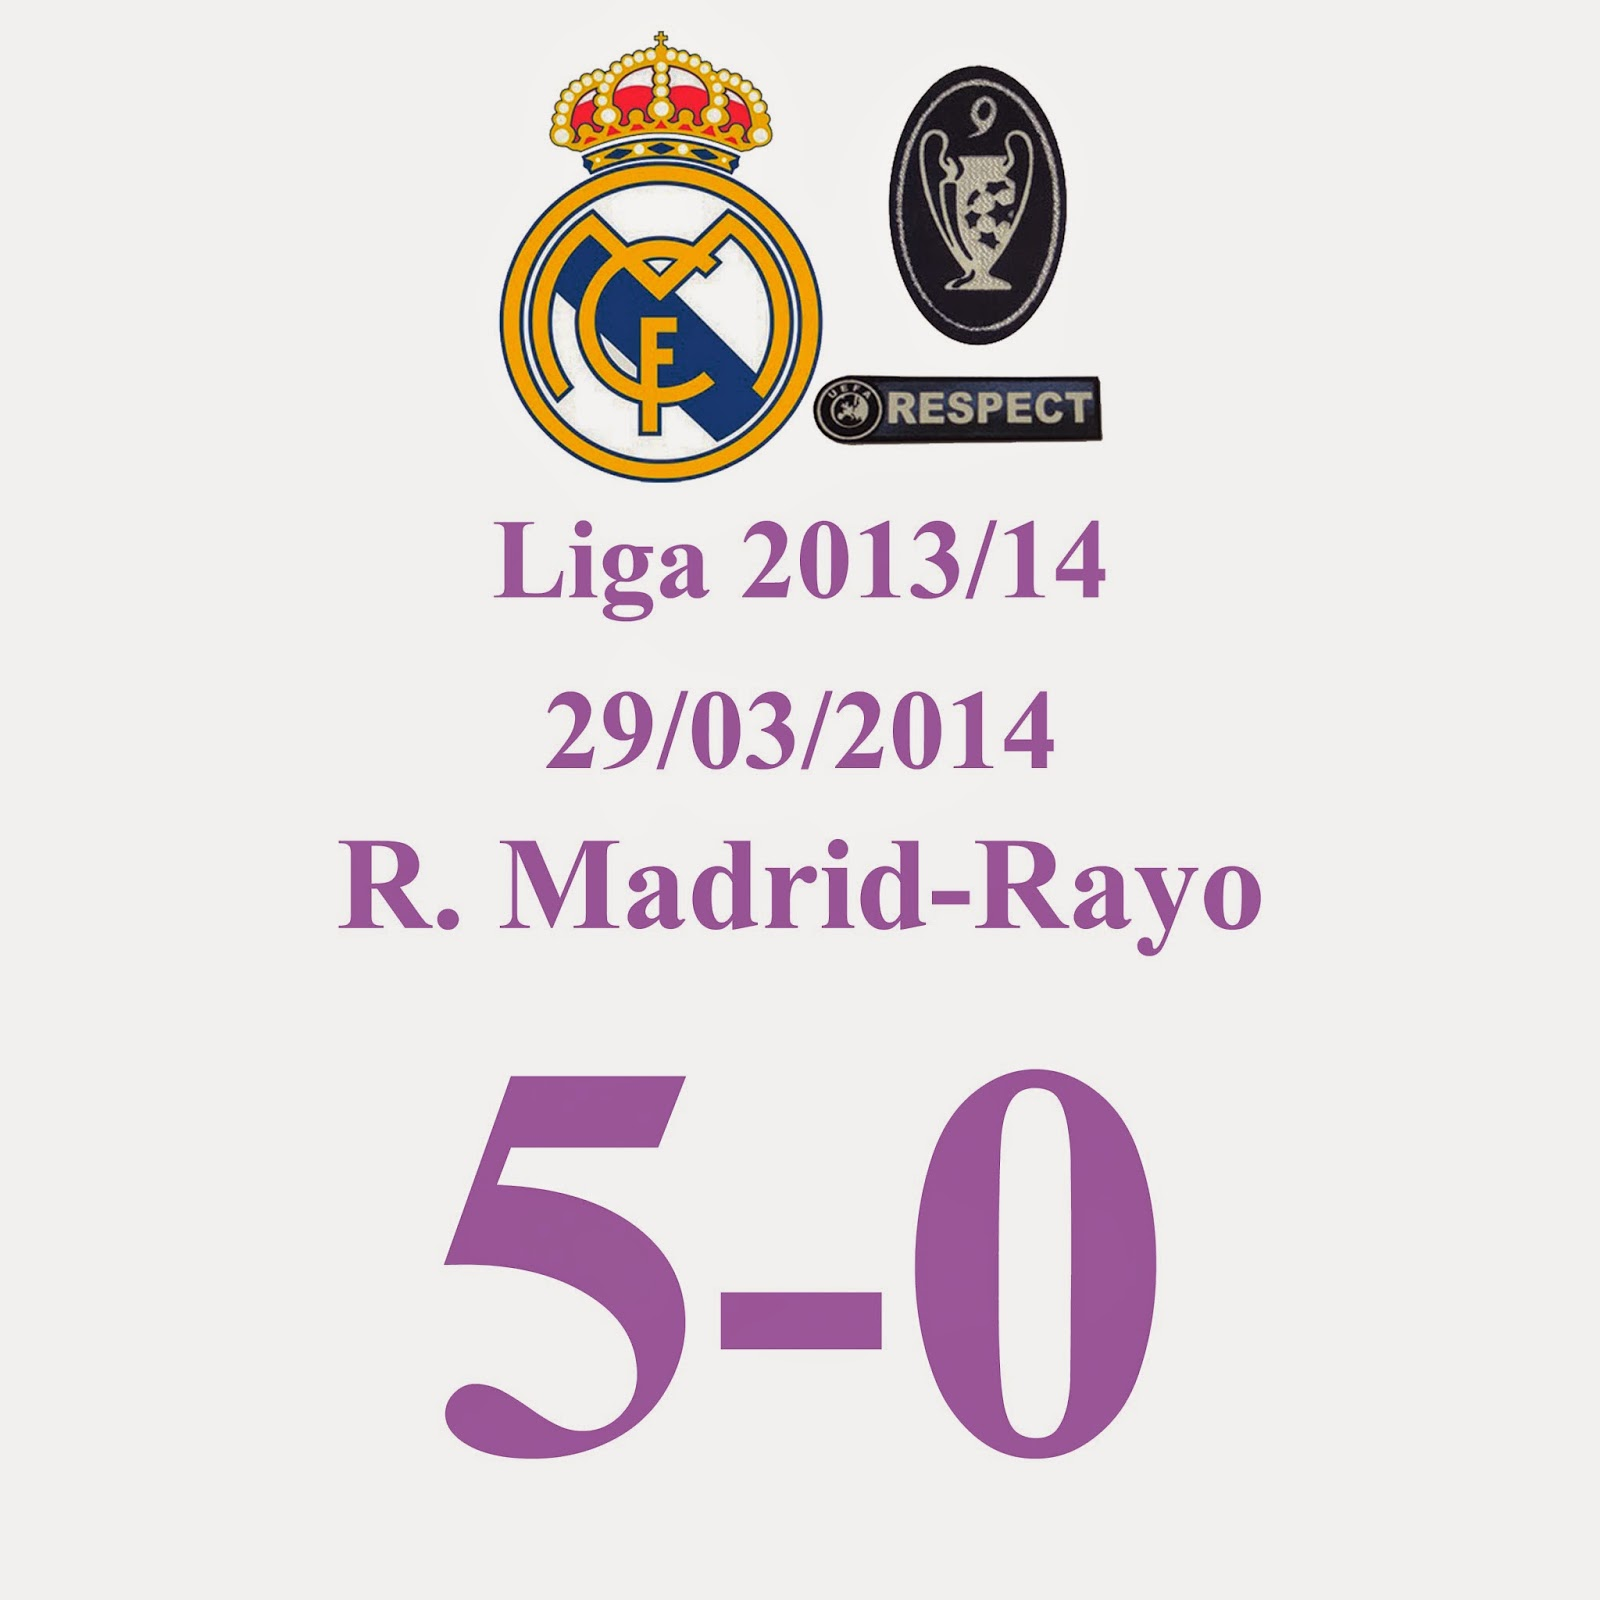 REAL MADRID 5 - 0 RAYO VALLECANO (Jornada 31) 29/03/14